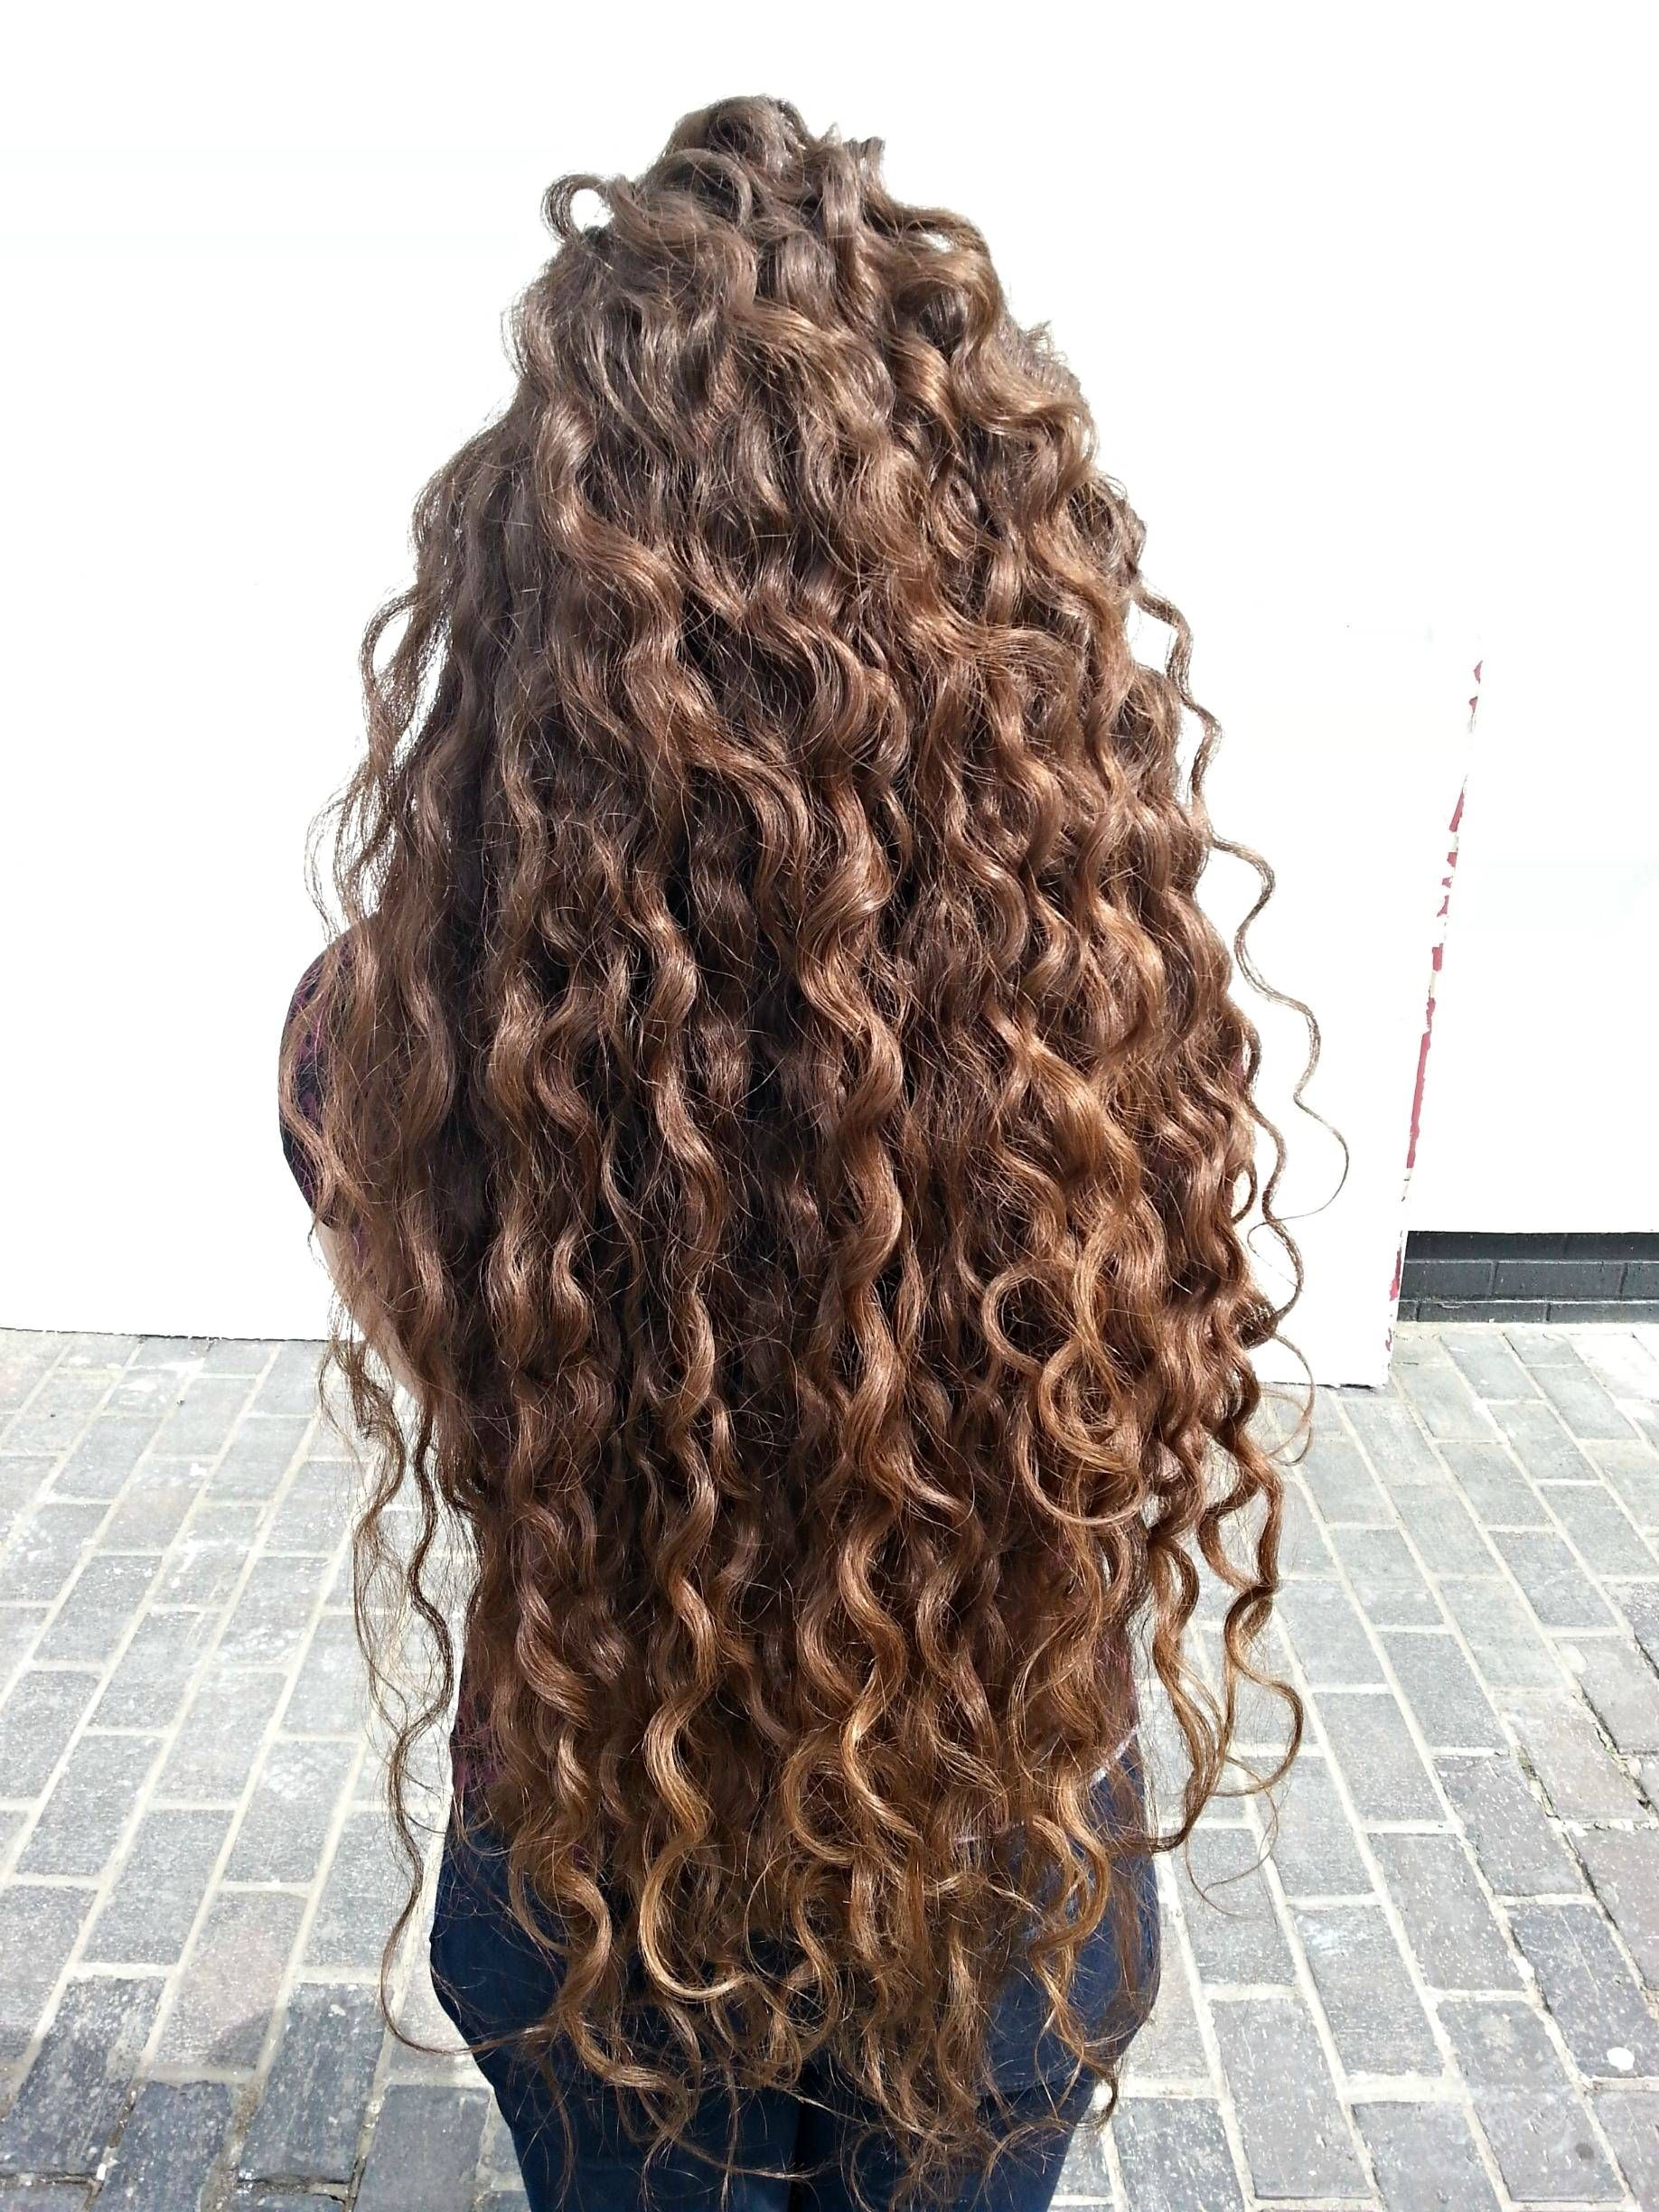 Perm hair: large curls of your dreams 36